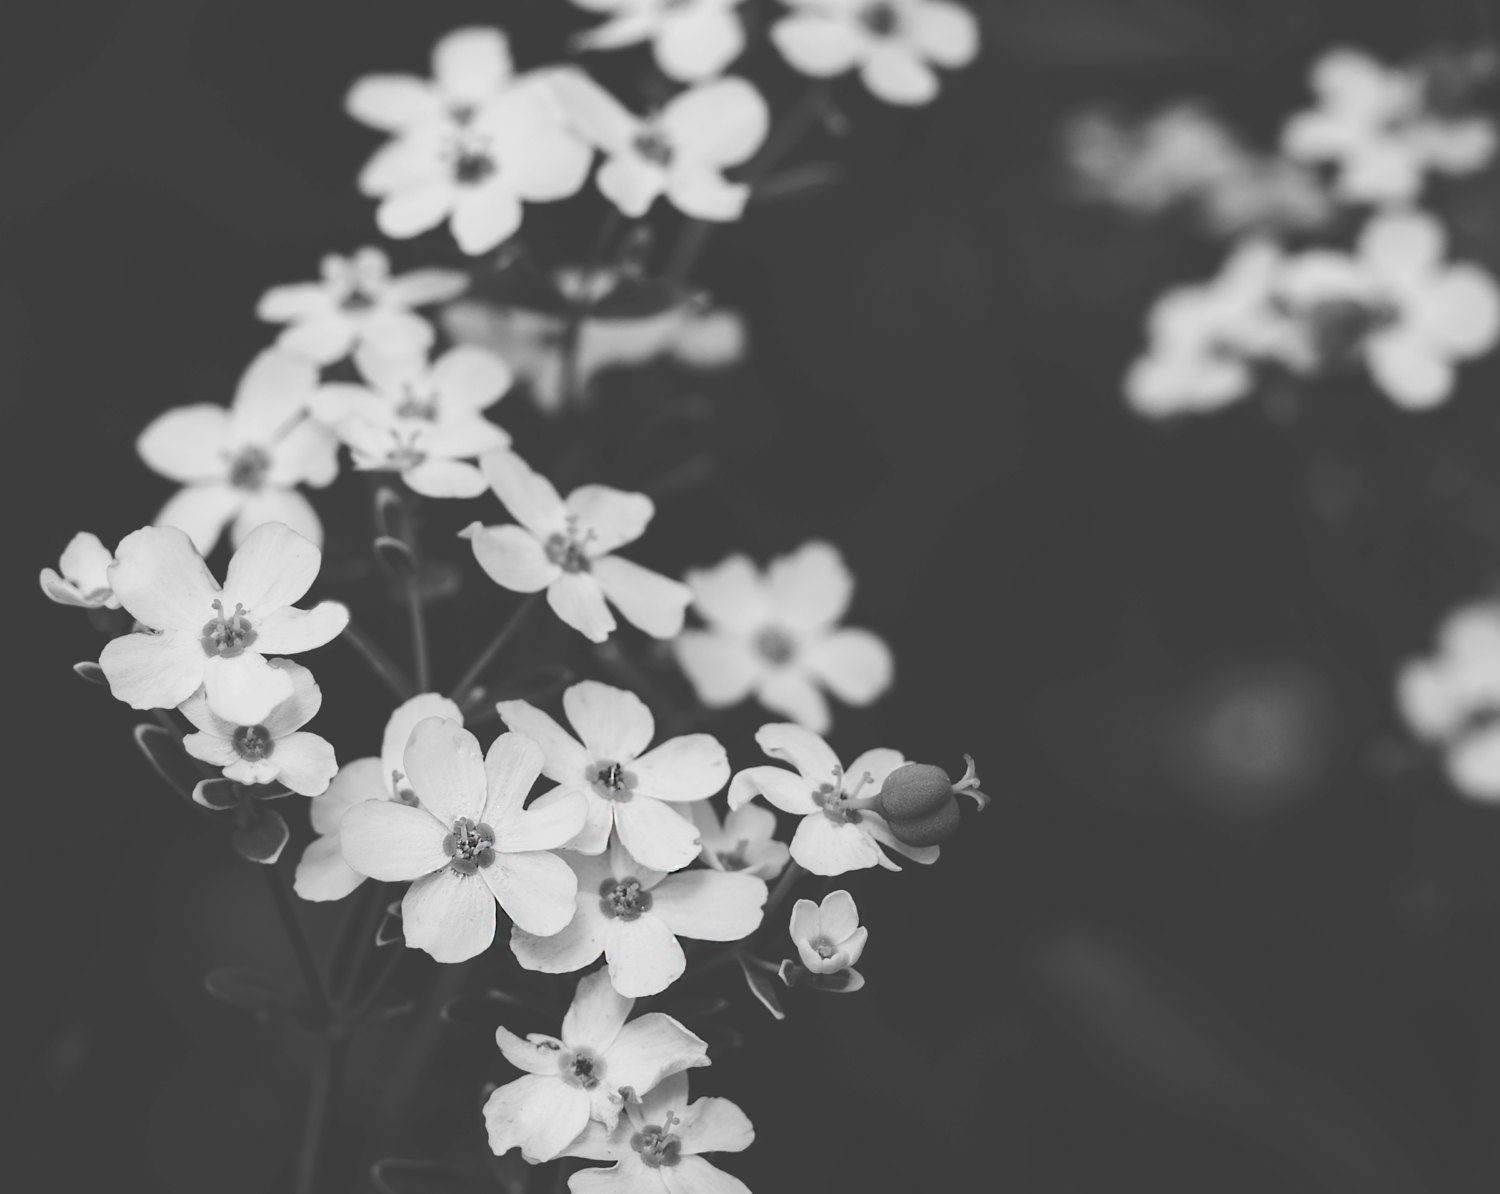 Lovely Small White Flowers B W Flower Photography Black And Etsy